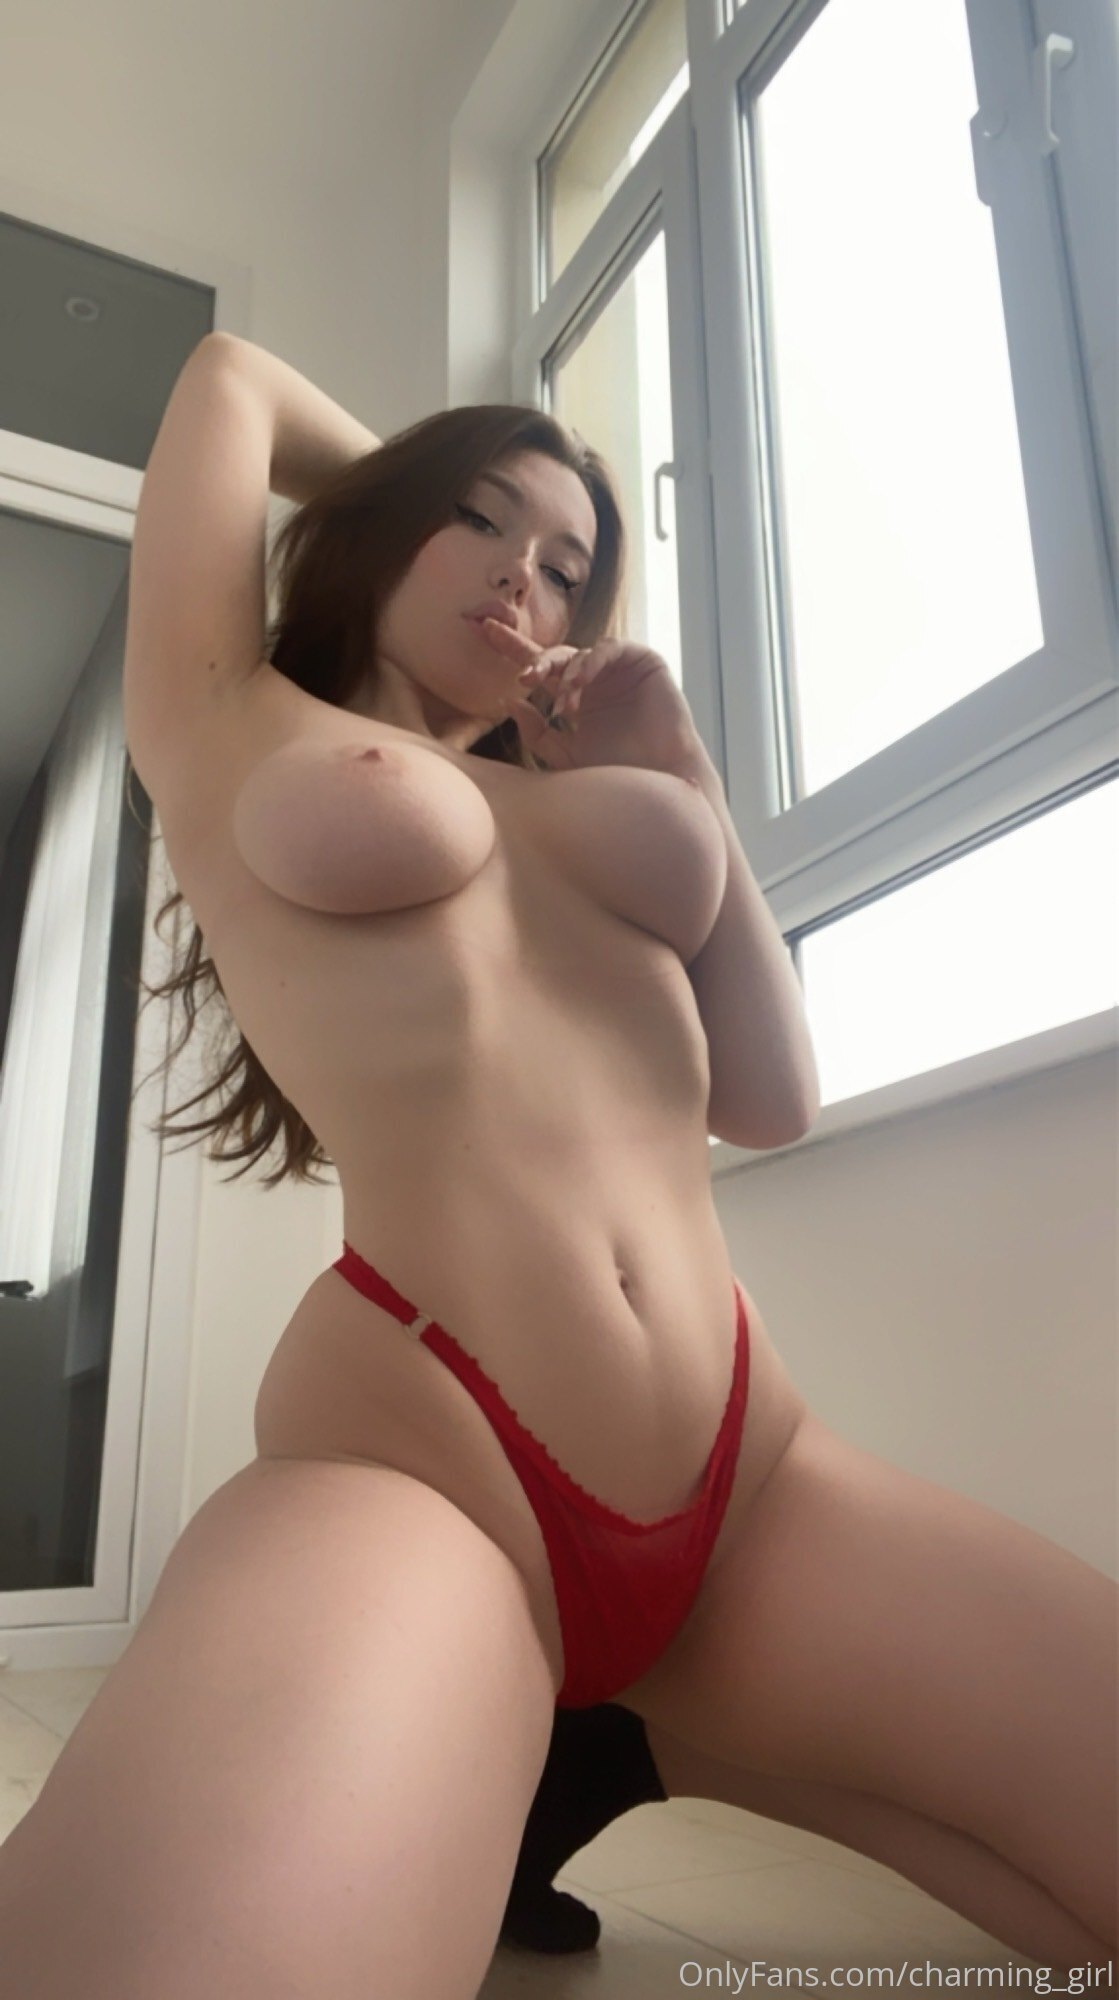 Milana, Charming Girl, Onlyfans 0028